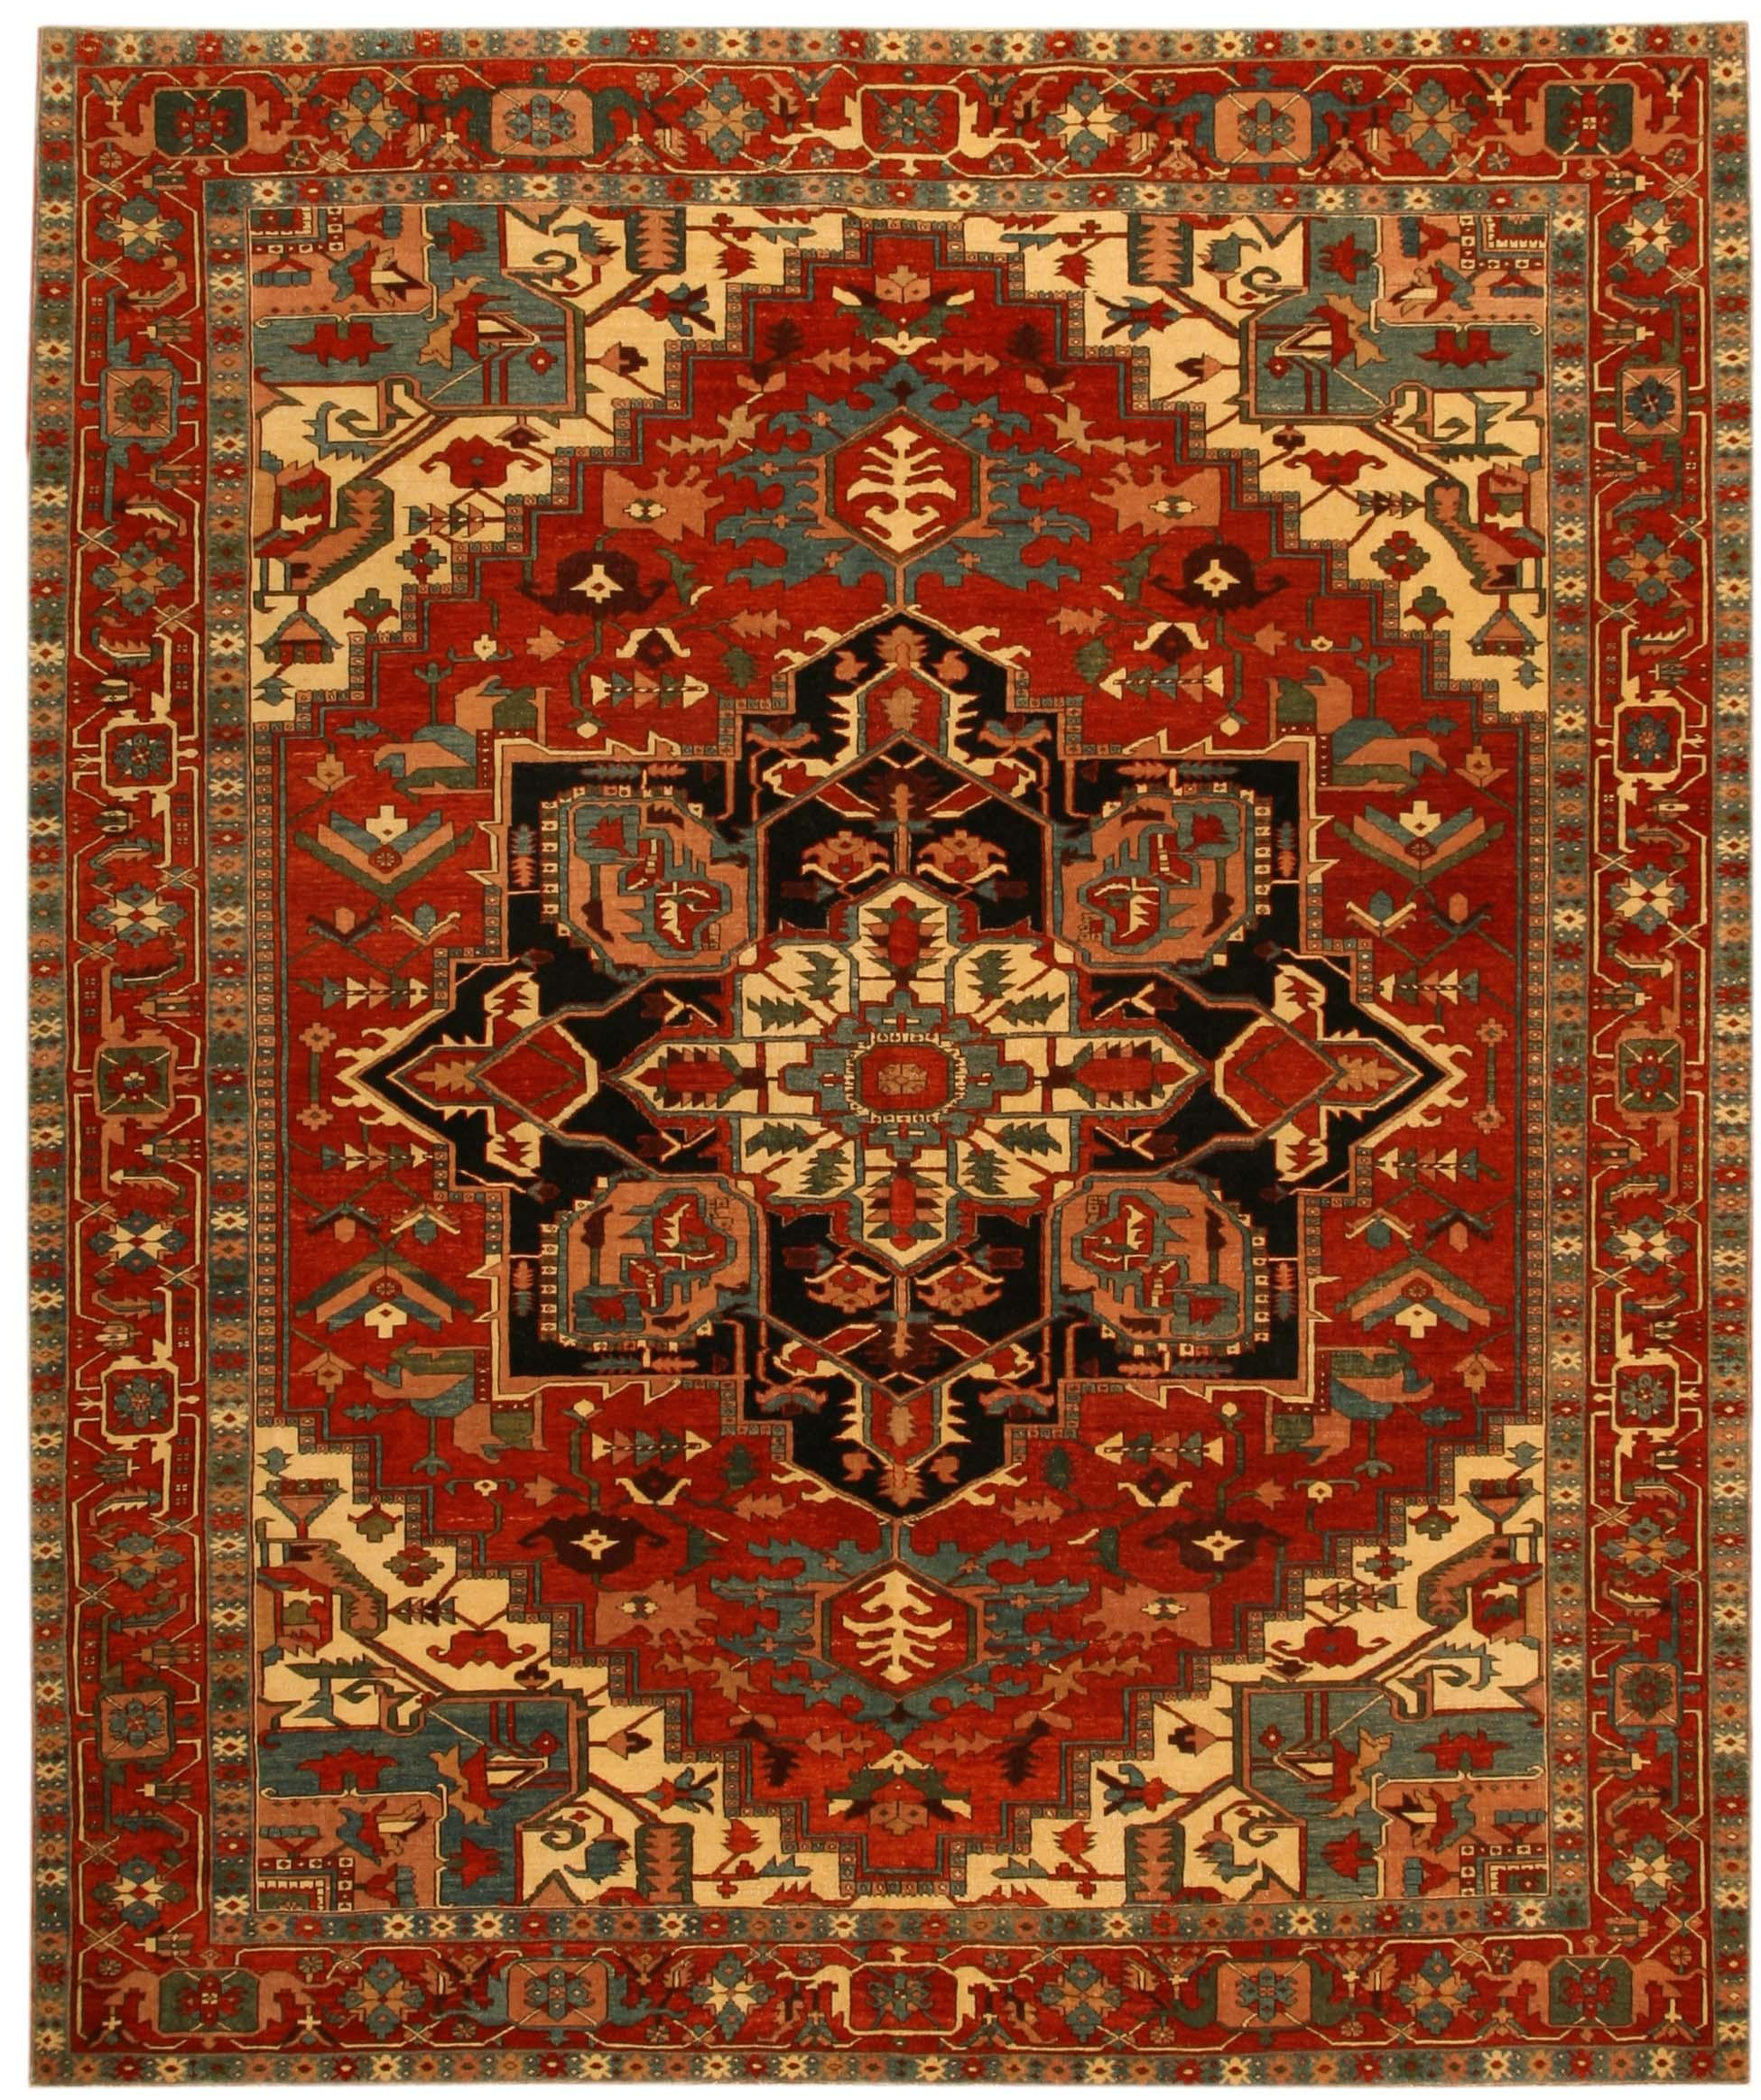 Cute turkish rugs - Google Search turkish carpets